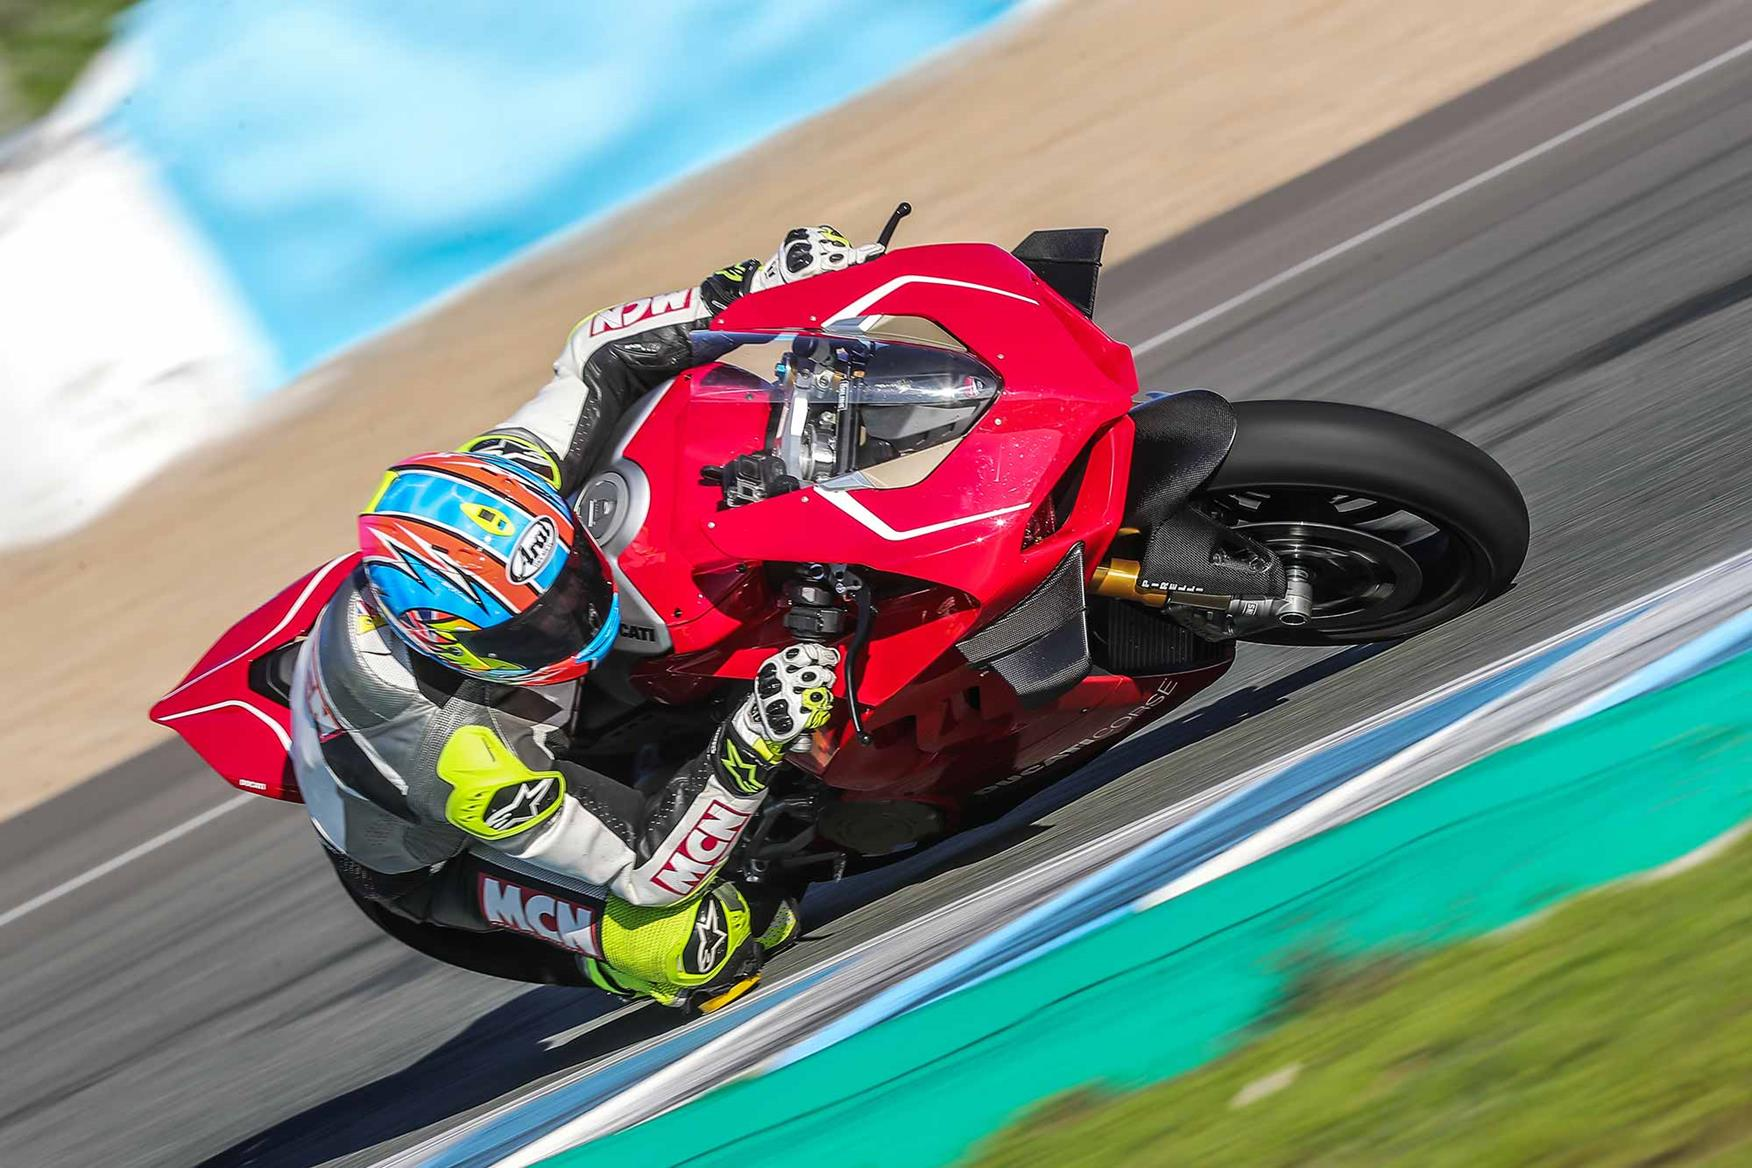 Ducati Panigale V4r 2019 On Review Mcn